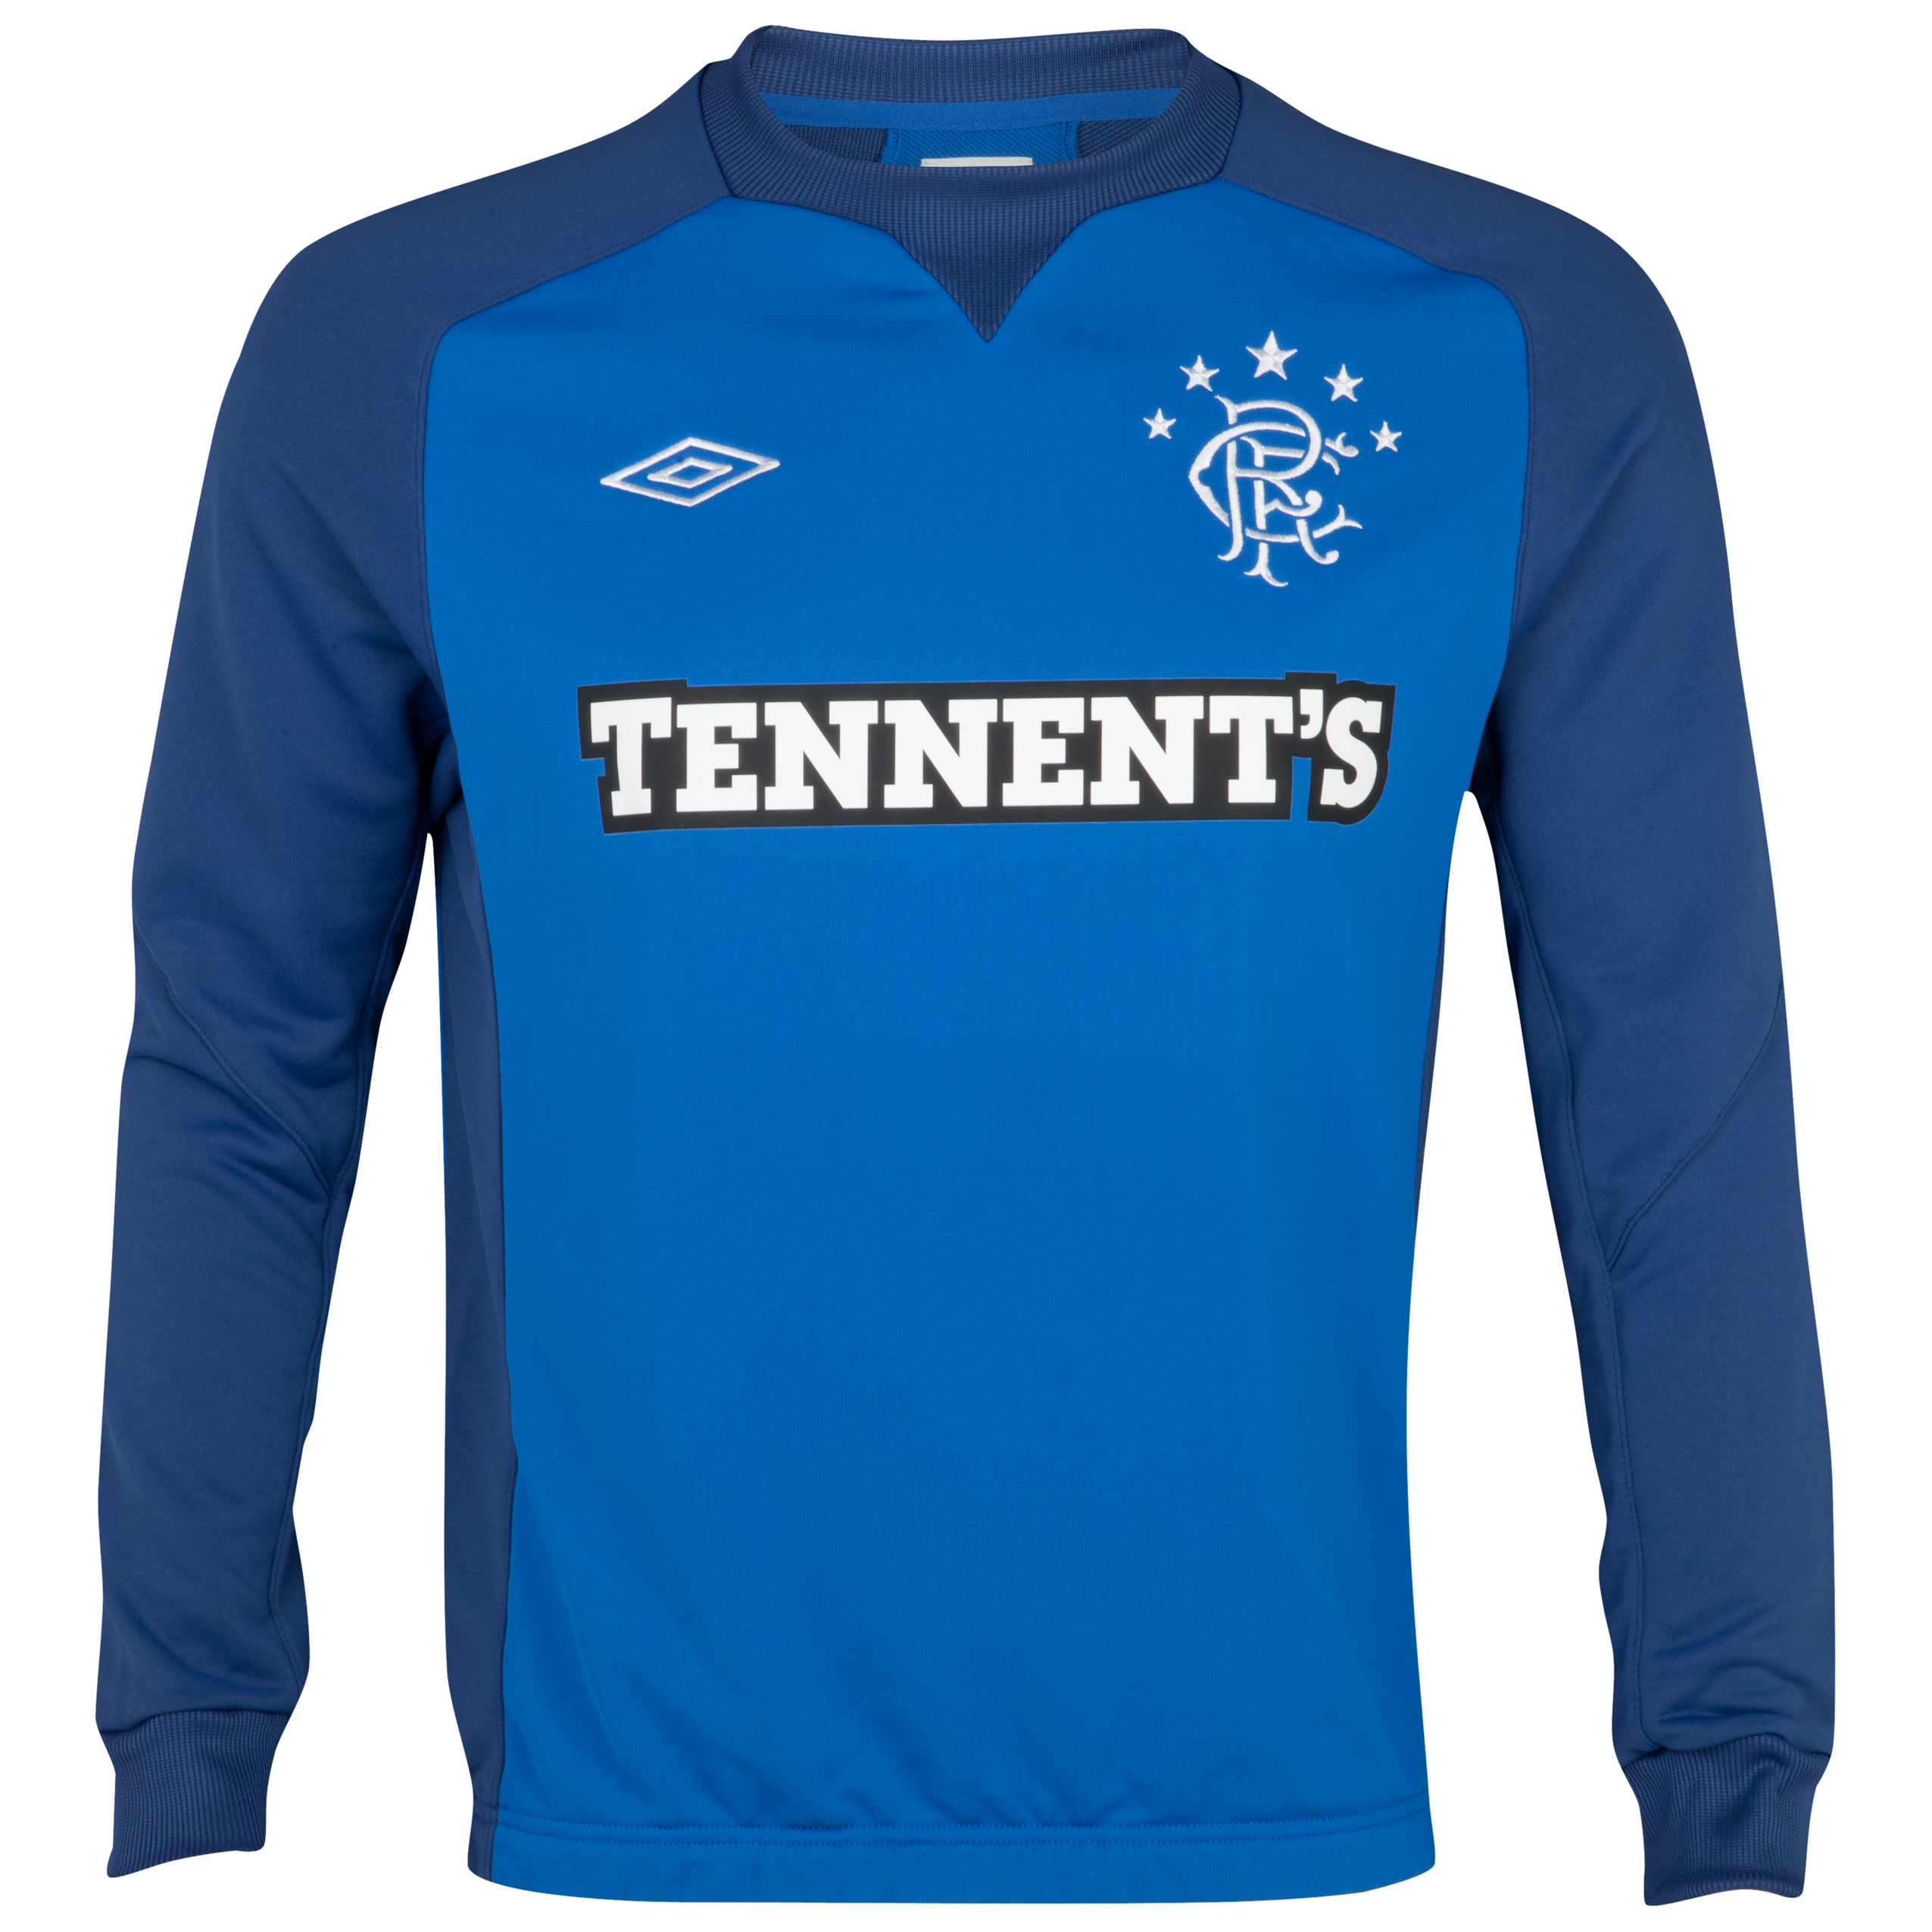 Glasgow Rangers Training Sweat Top - Royal / Regal Blue